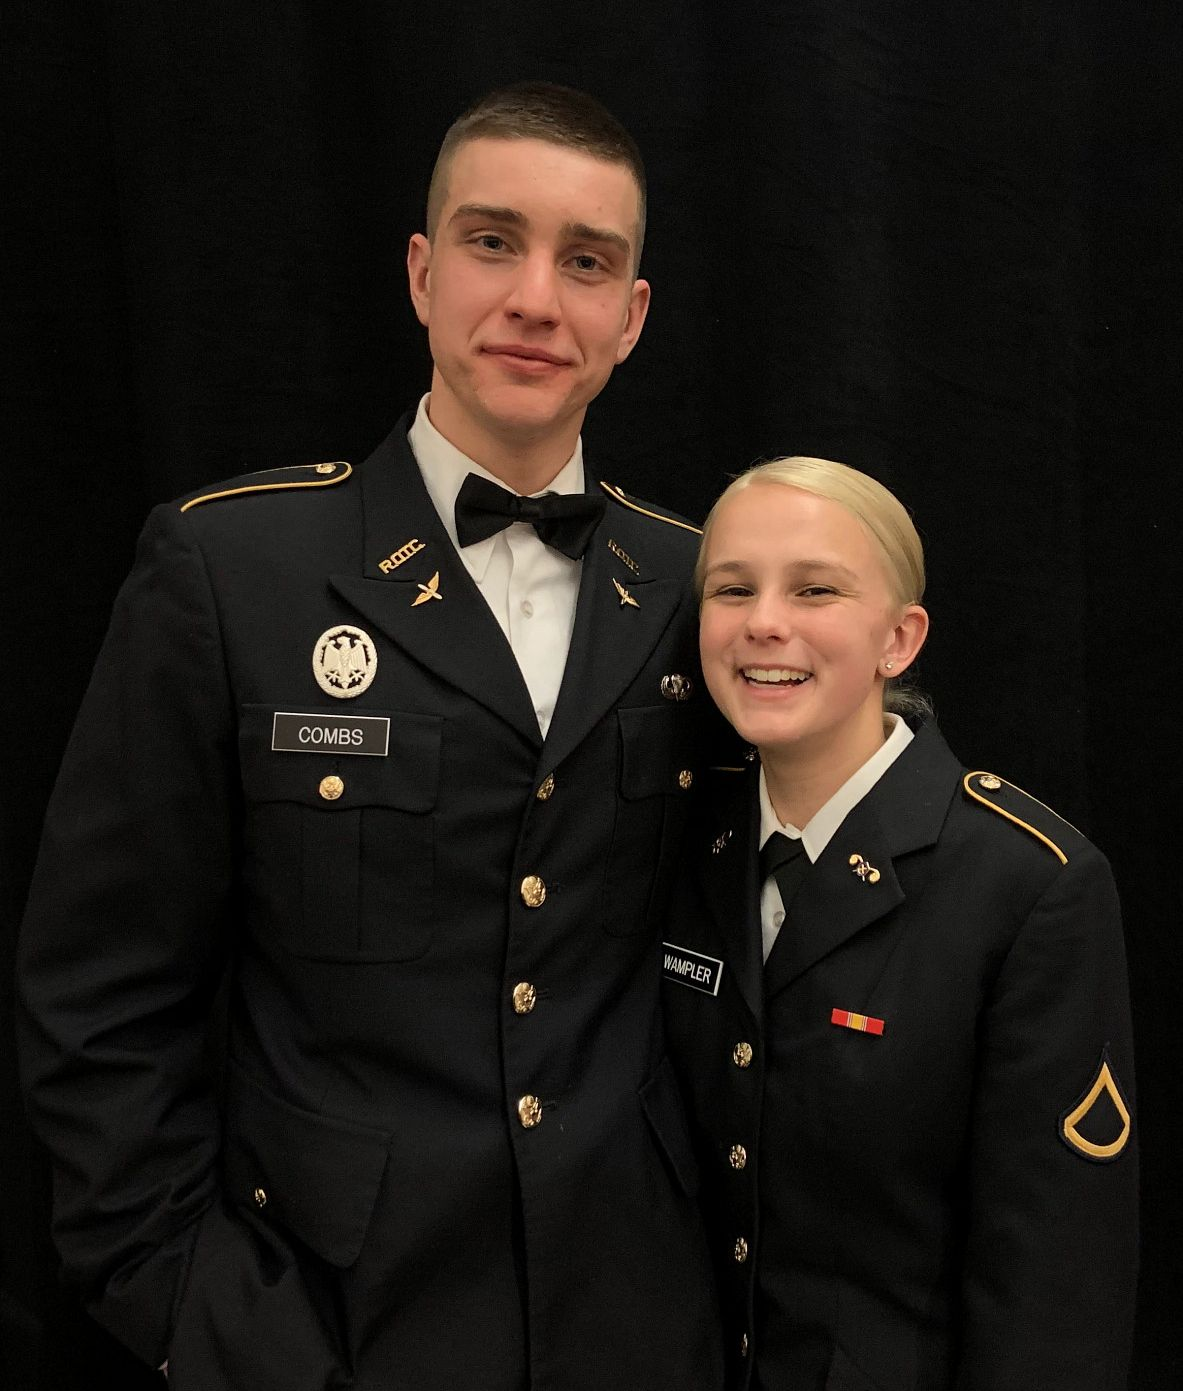 Alex Combs and Kate Wampler in their Army ROTC uniforms